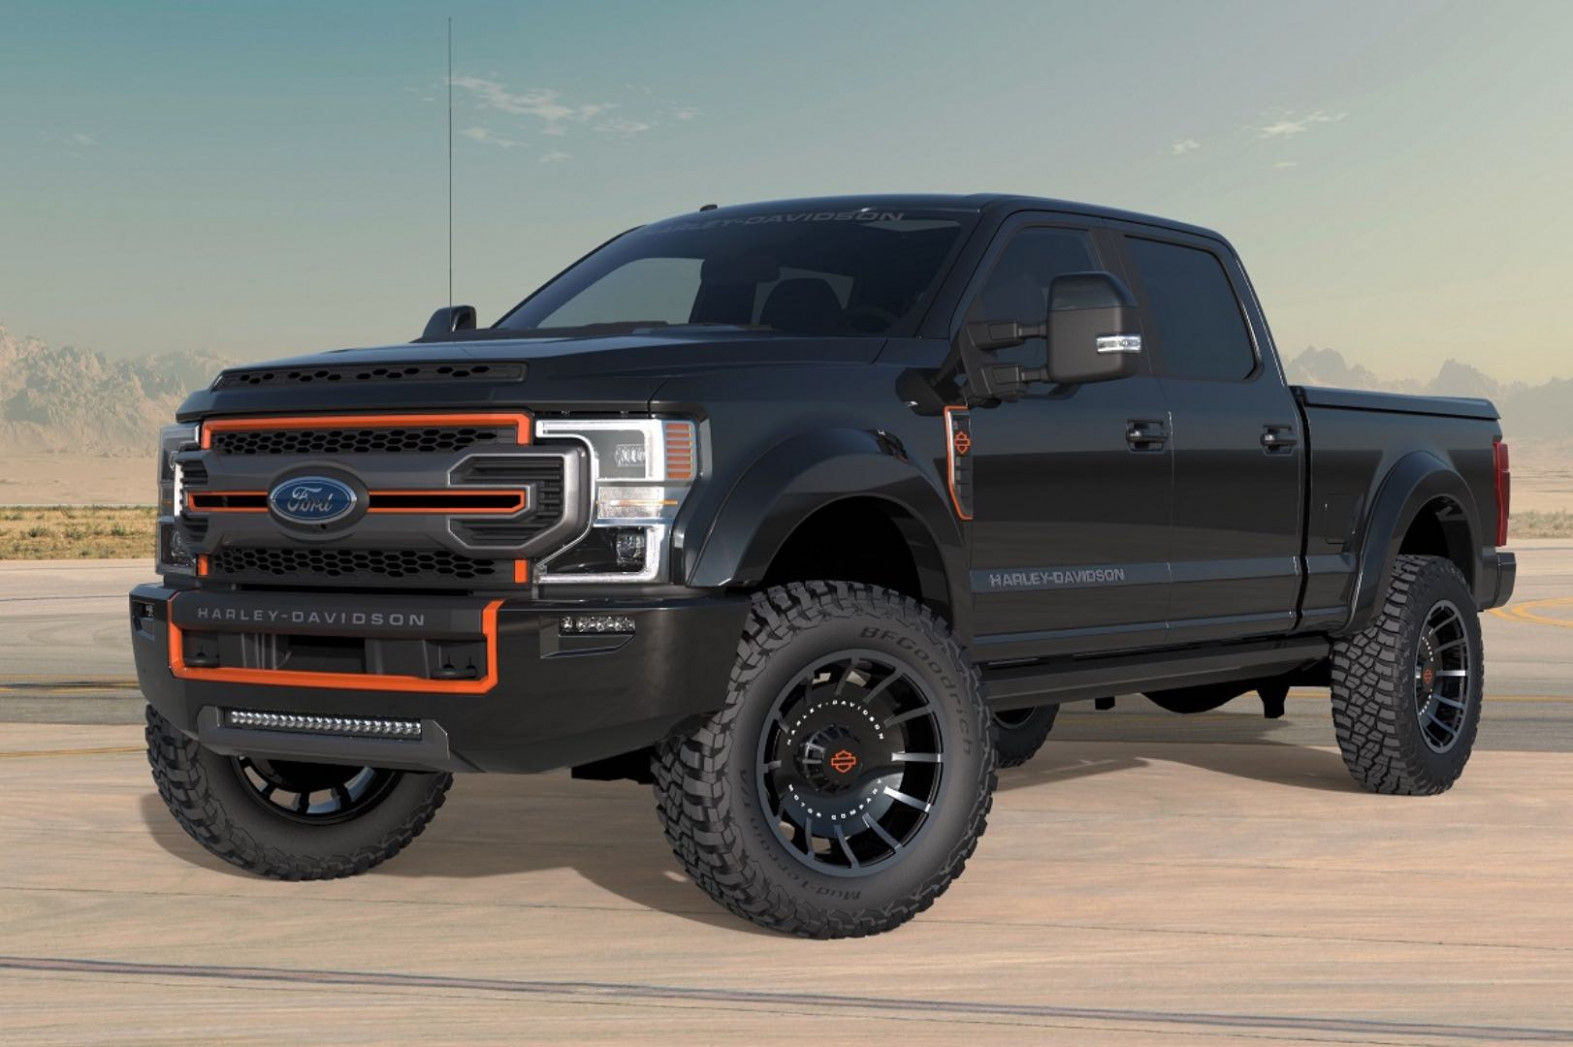 7 Harley-Davidson Ford F-7 Inspired by Fat Boy Unveiled